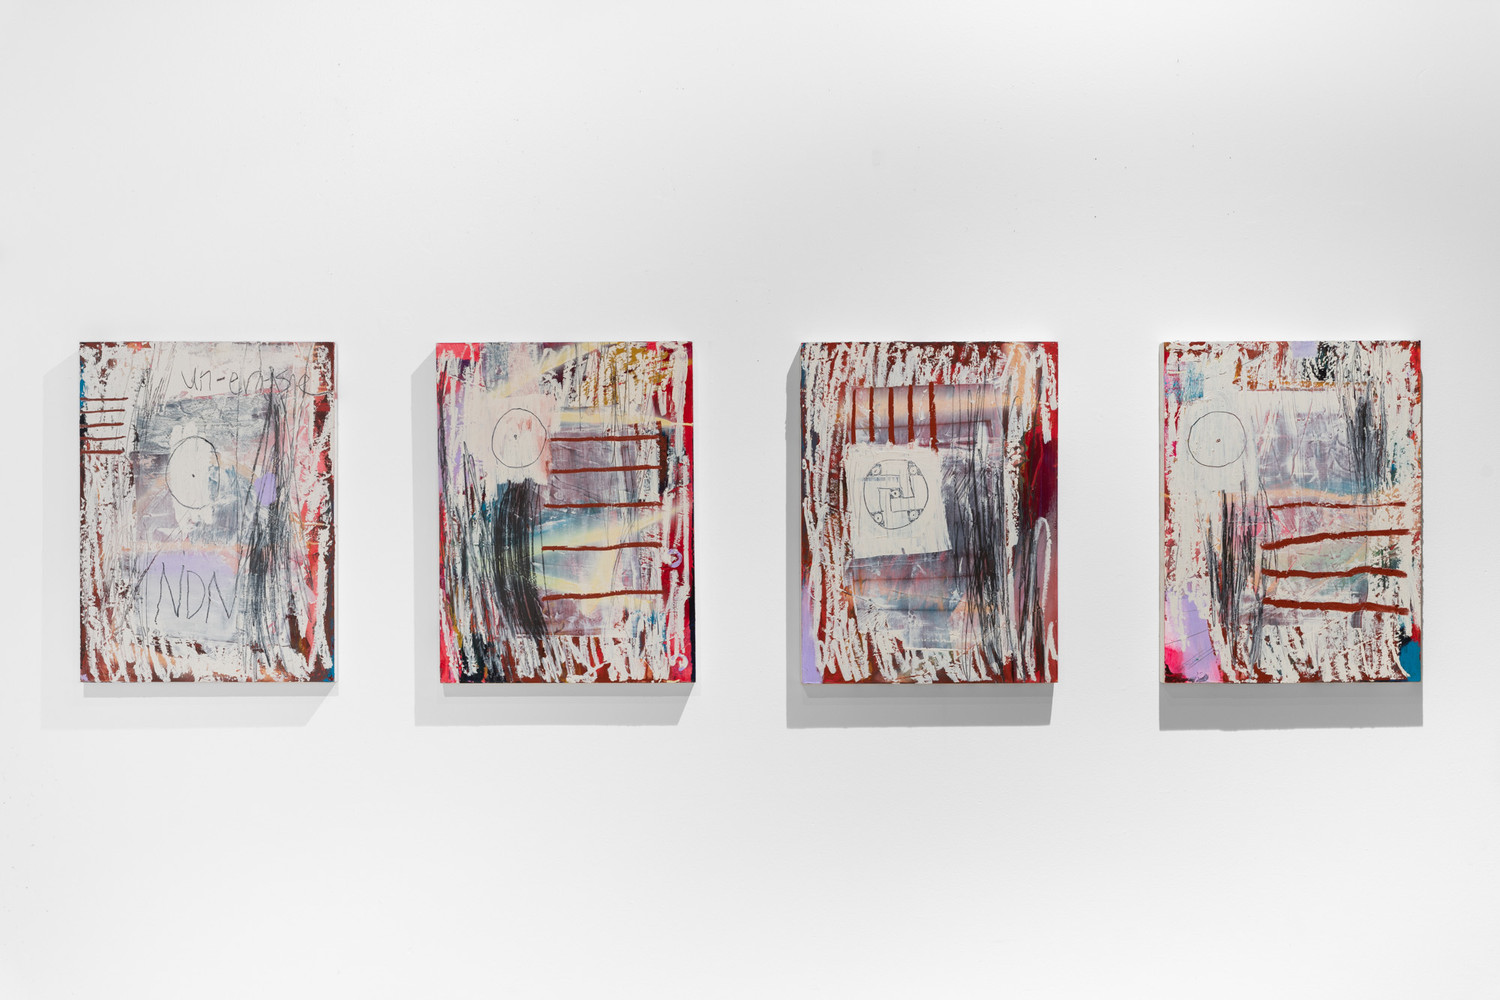 A Lie Nation, The Lines, acrylic, aerosol, graphite, oil paints on wood panel, 4 panel series, 24 x 18 inches each